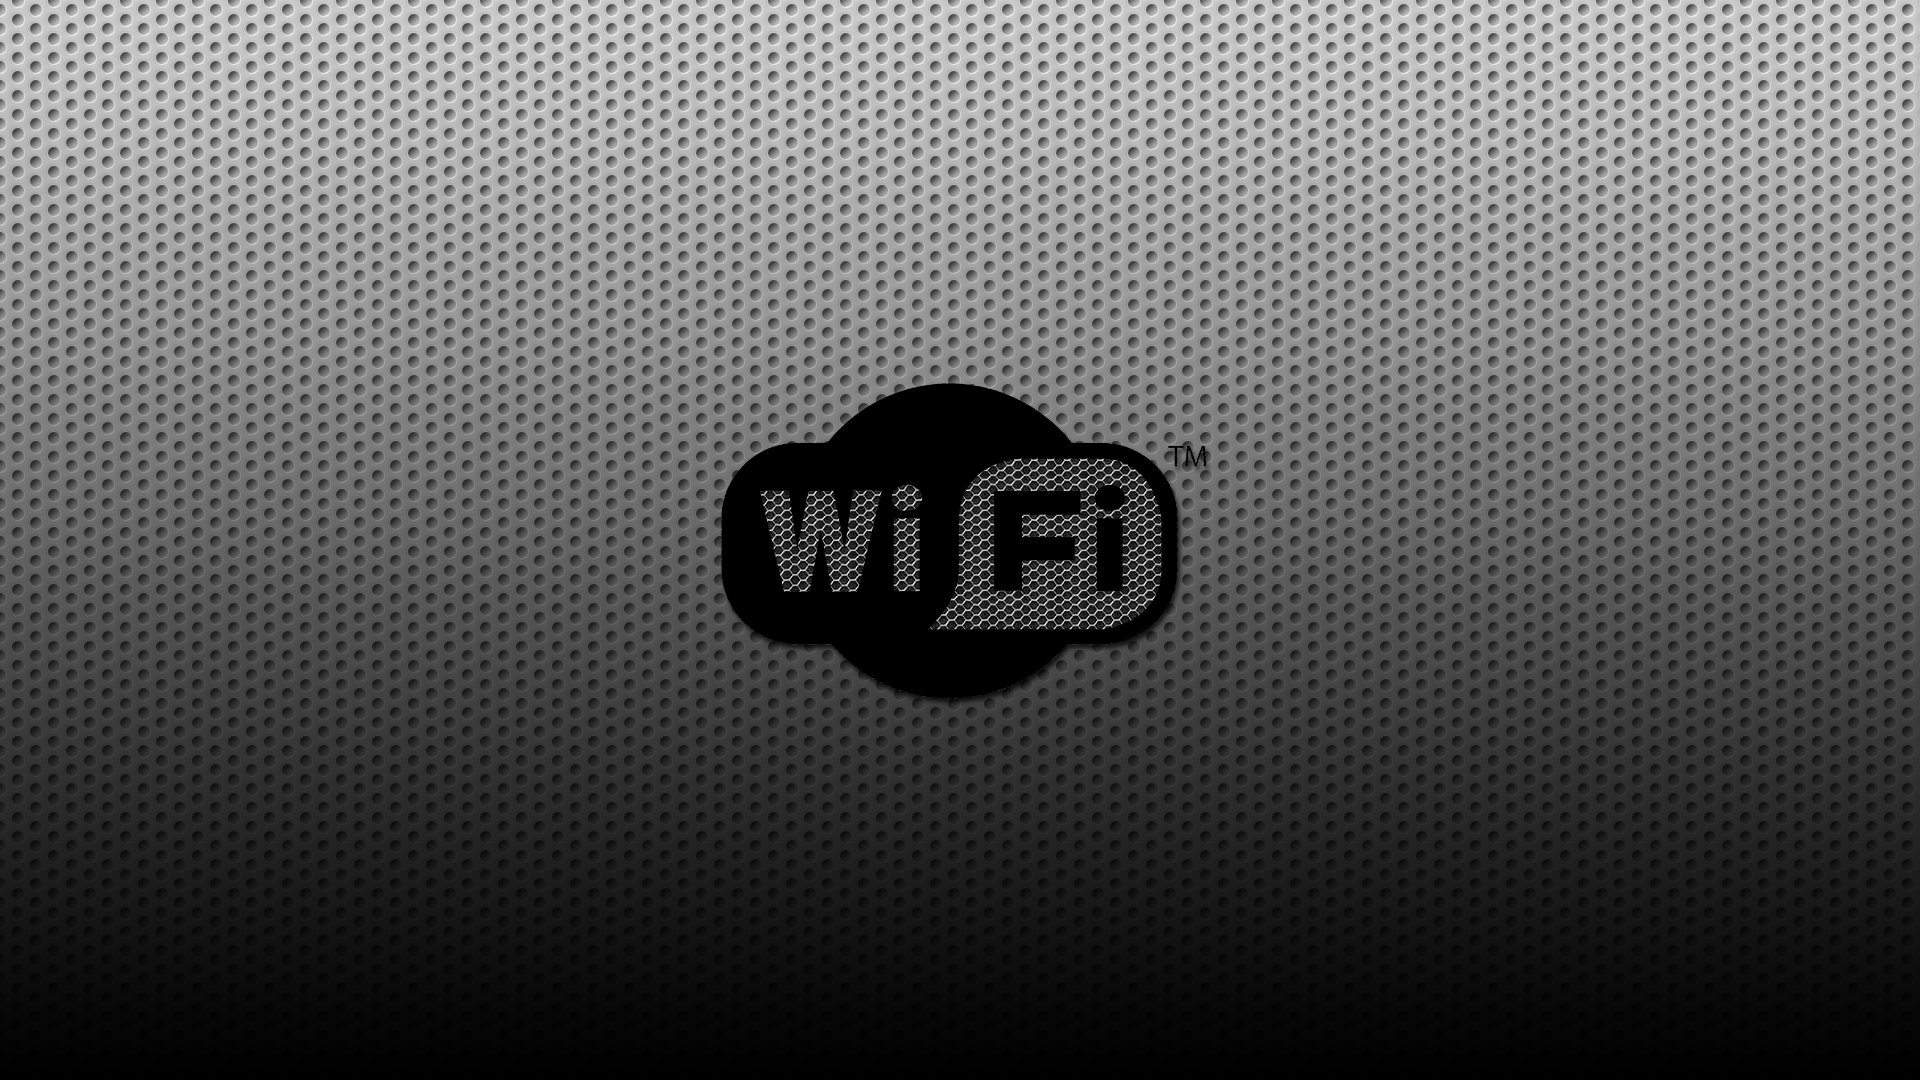 Wifi Wallpaper